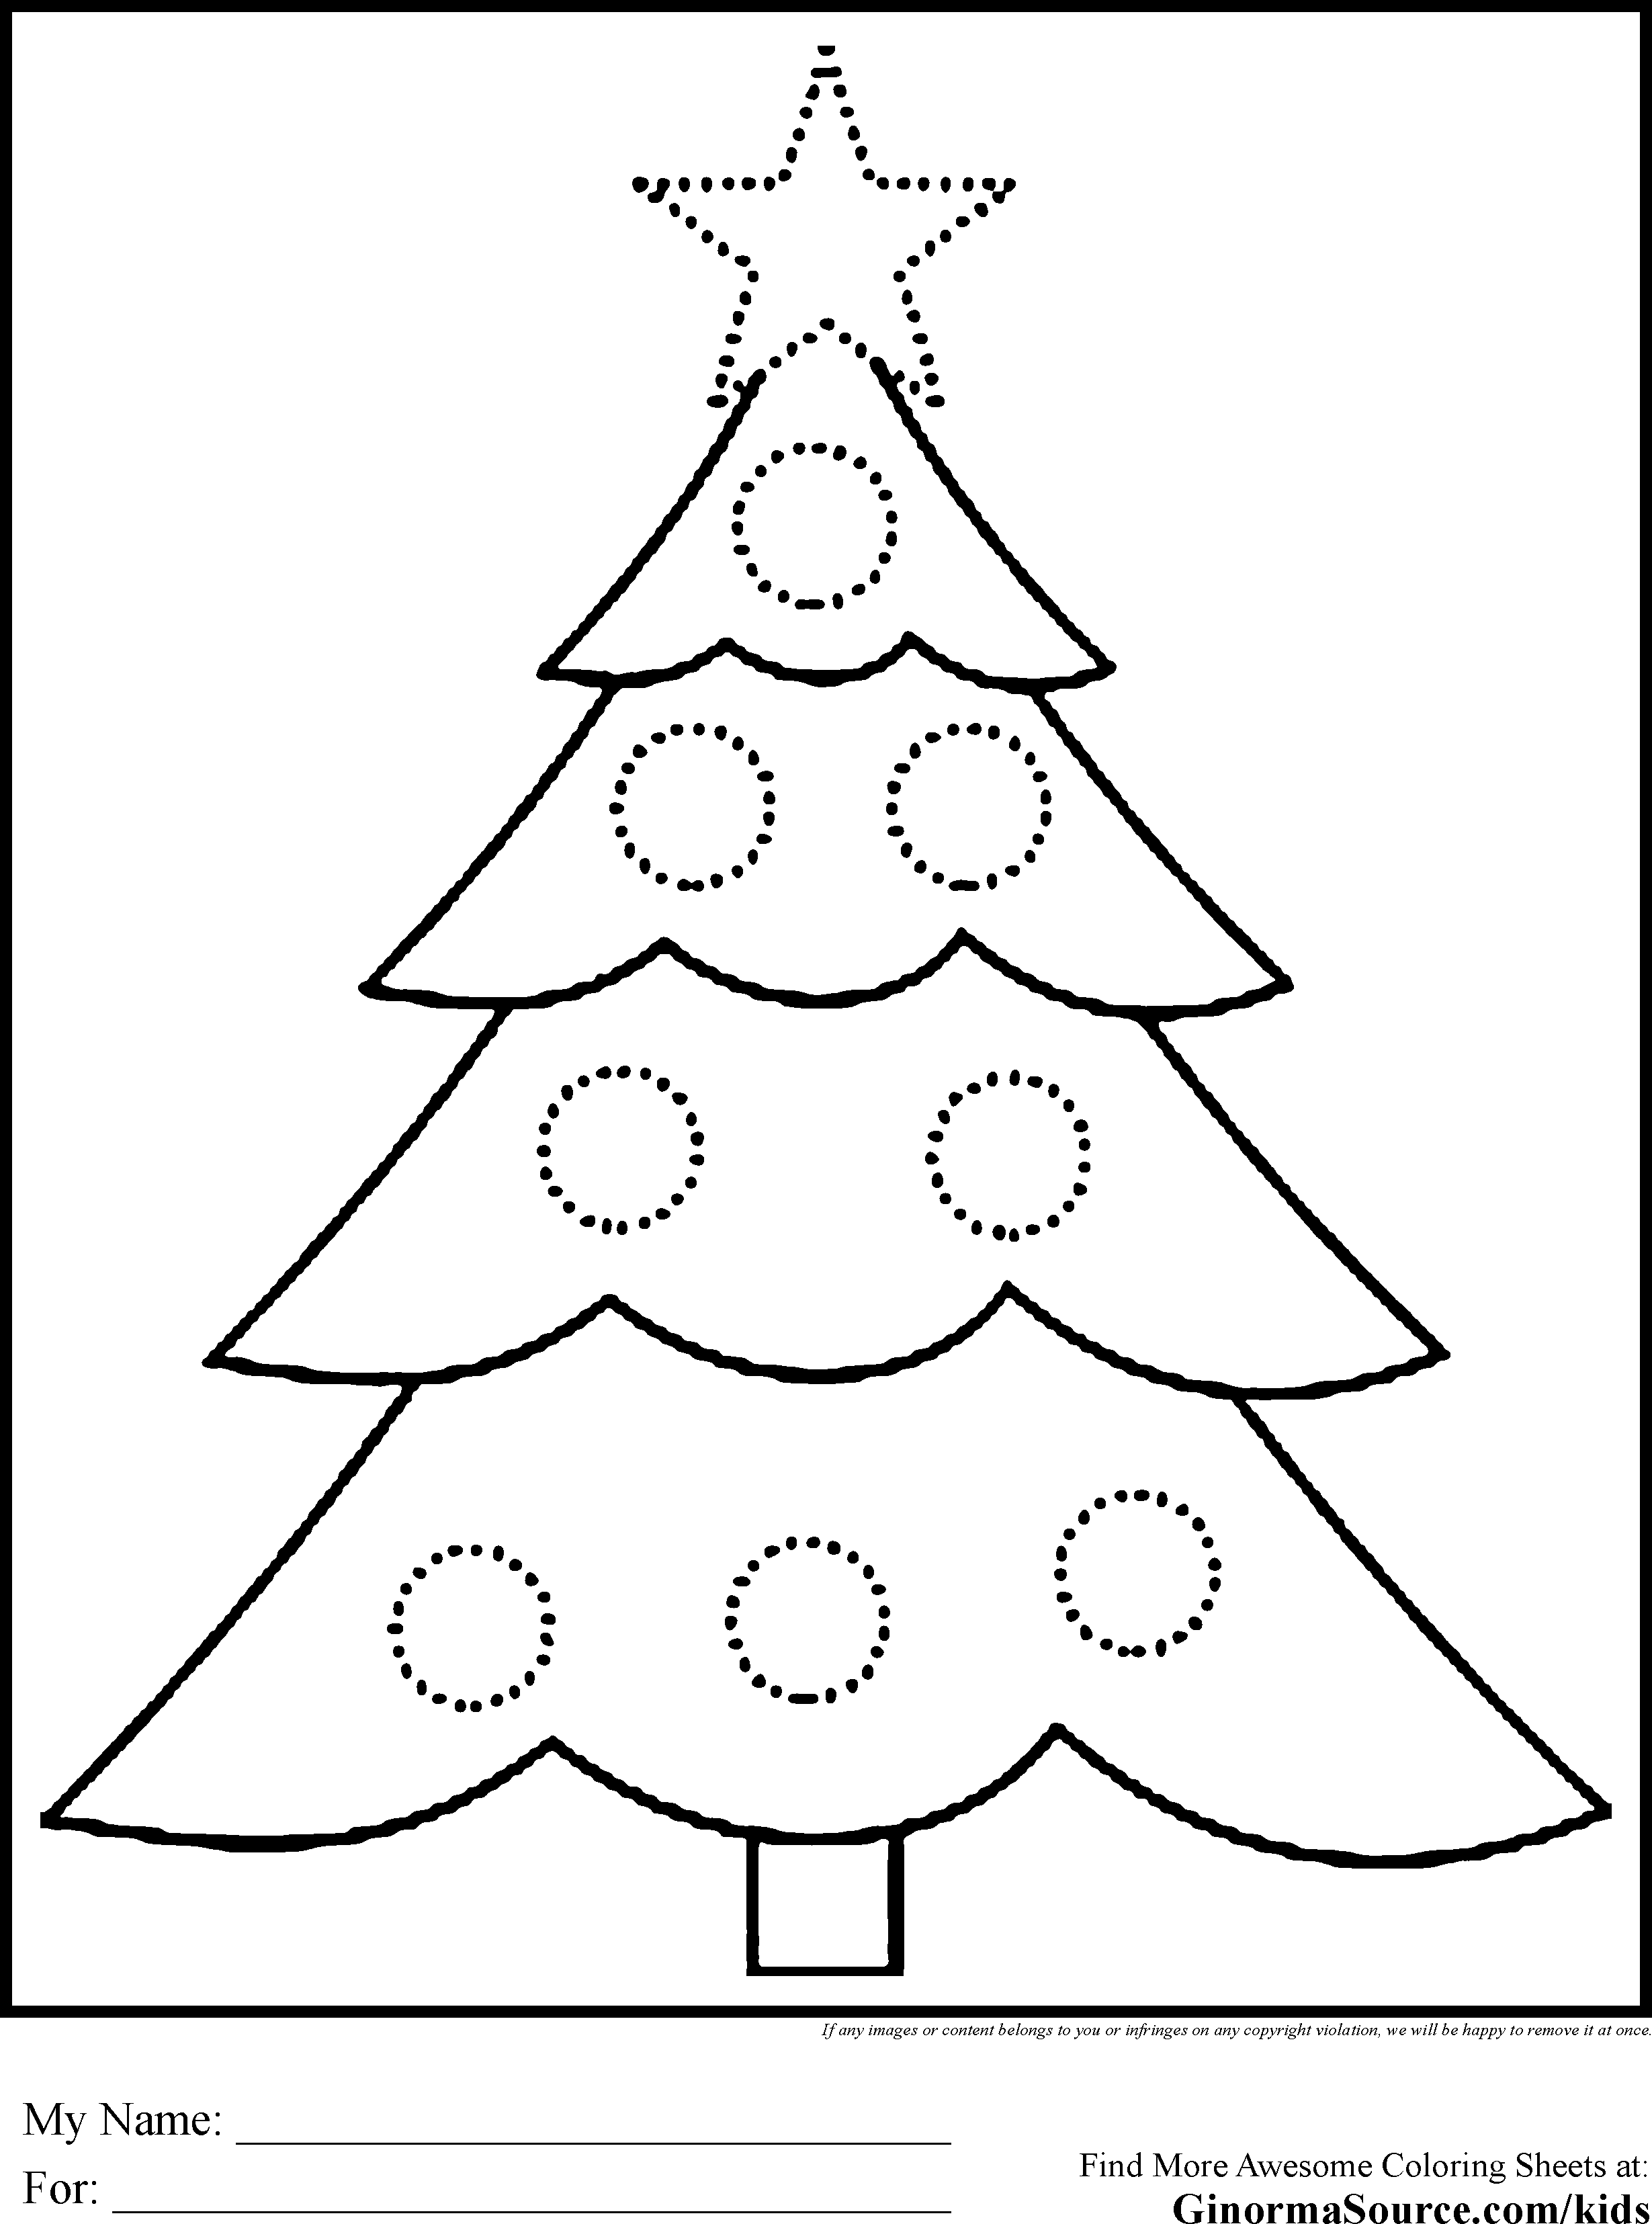 Mickey Mouse Free Christmas Tree Coloring Pages